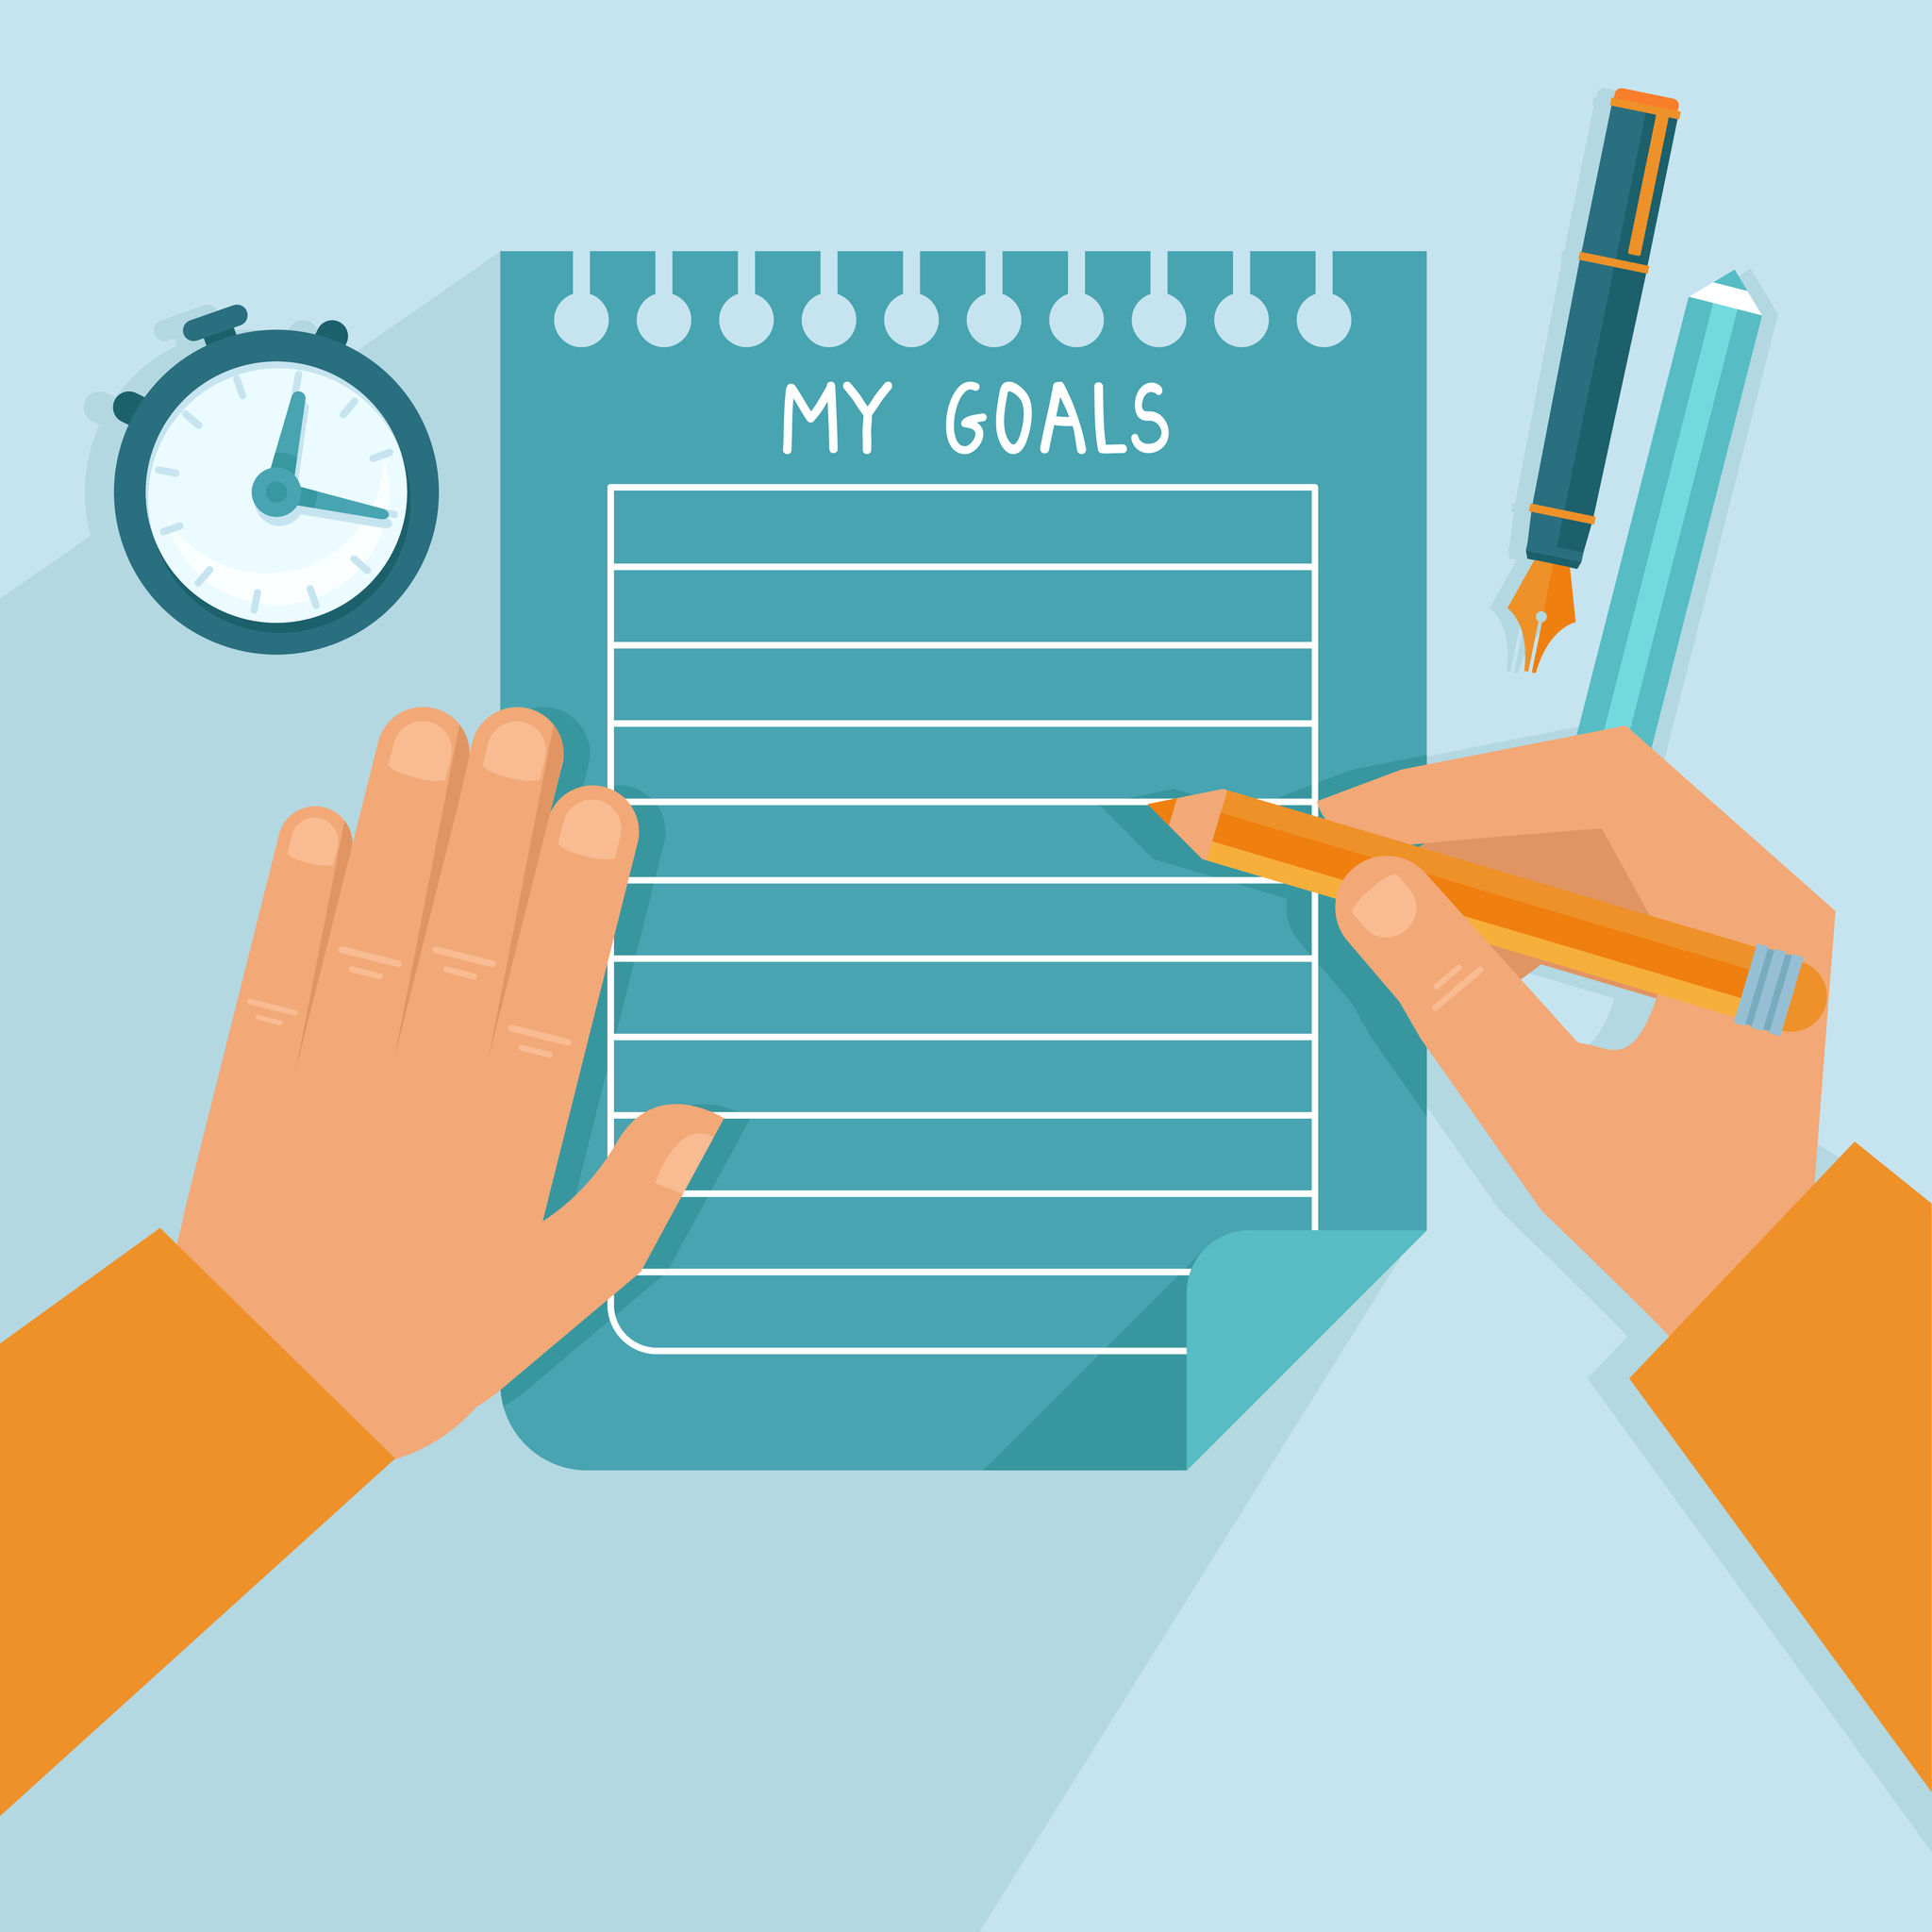 How to evaluate a personal development plan